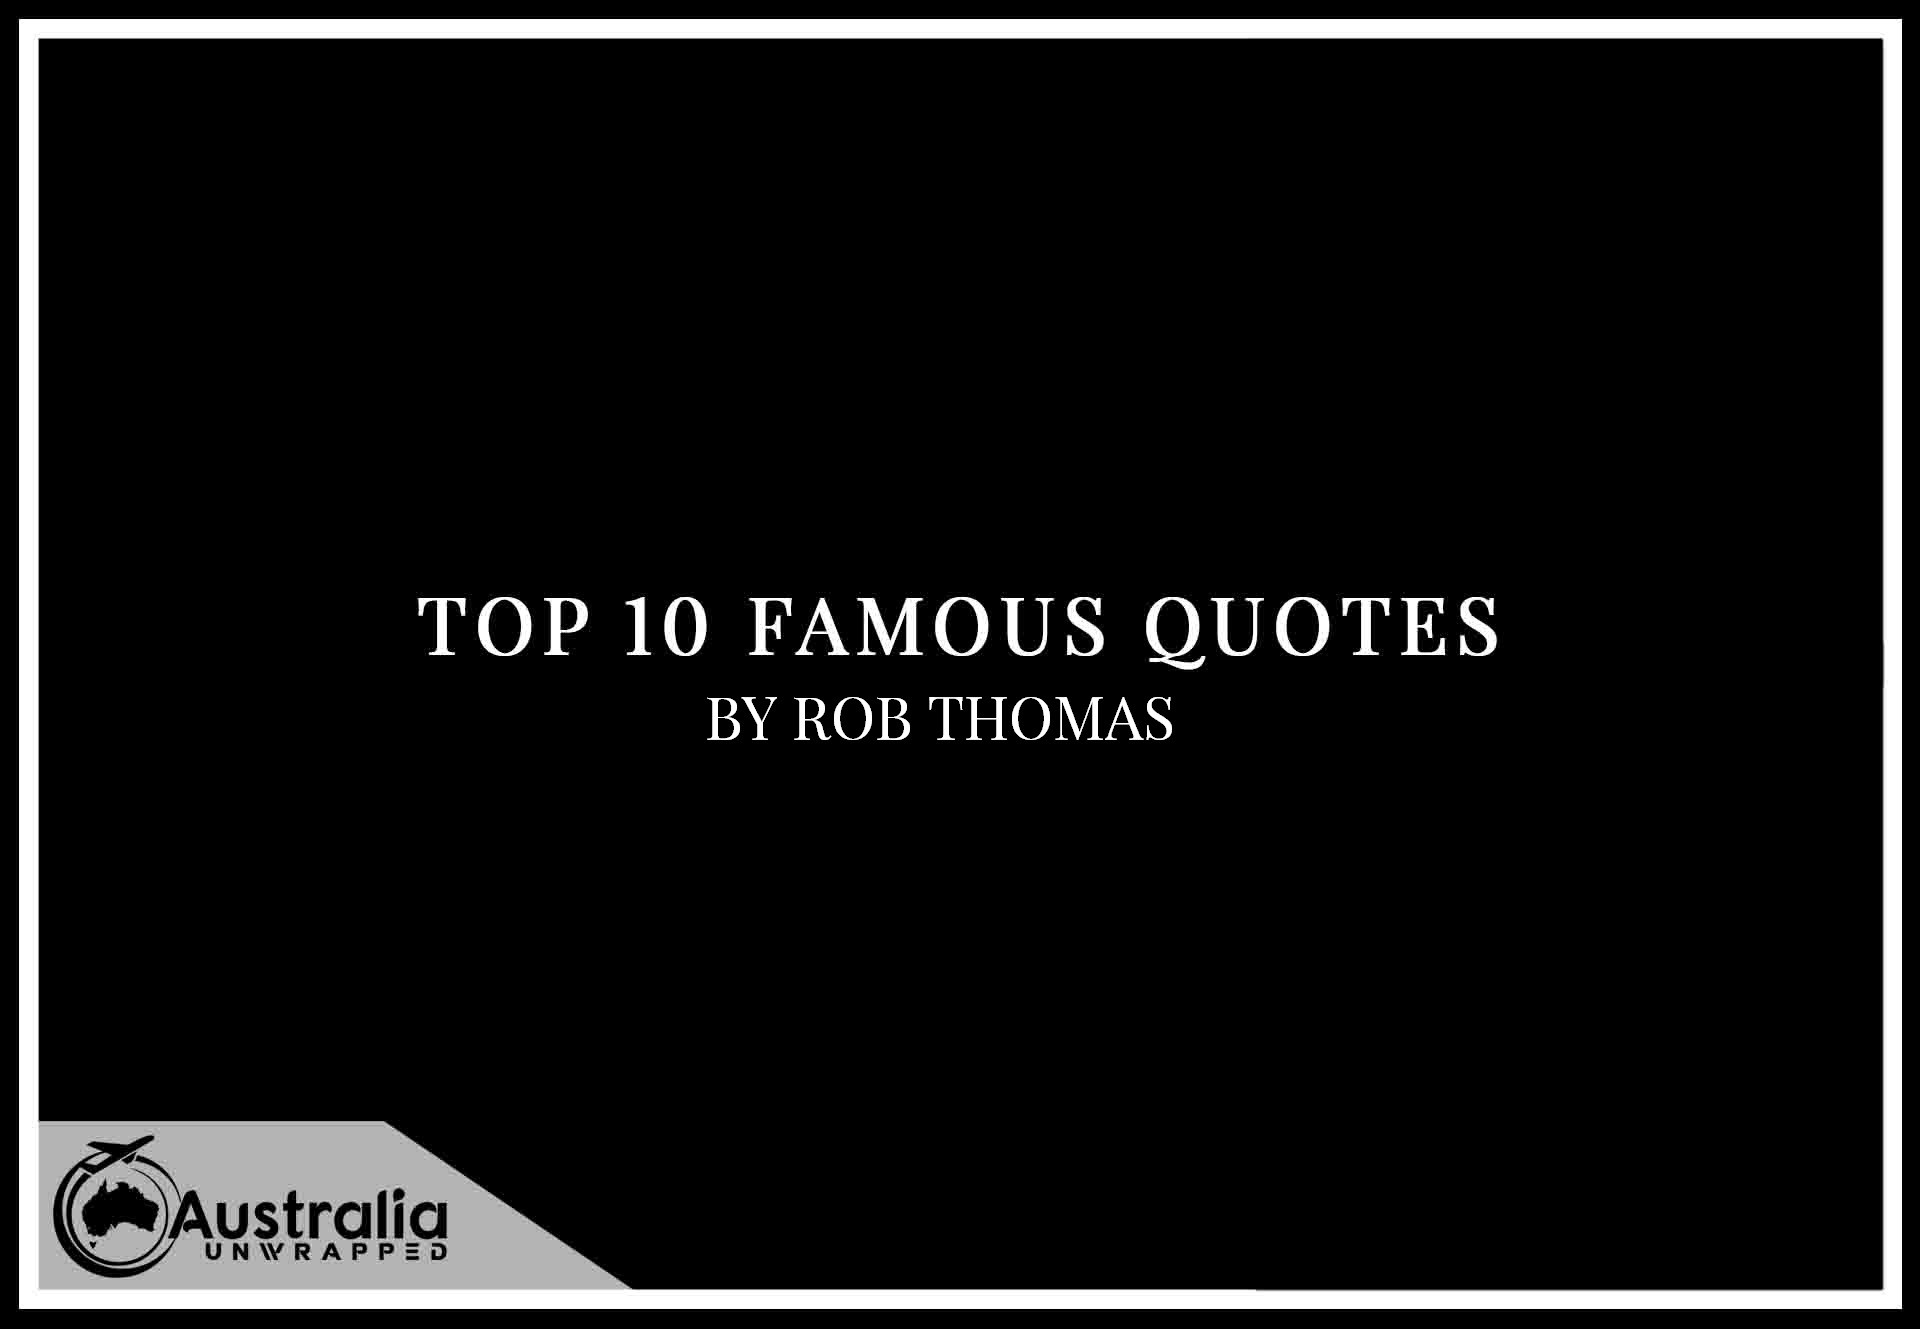 Top 10 Famous Quotes by Author Rob Thomas